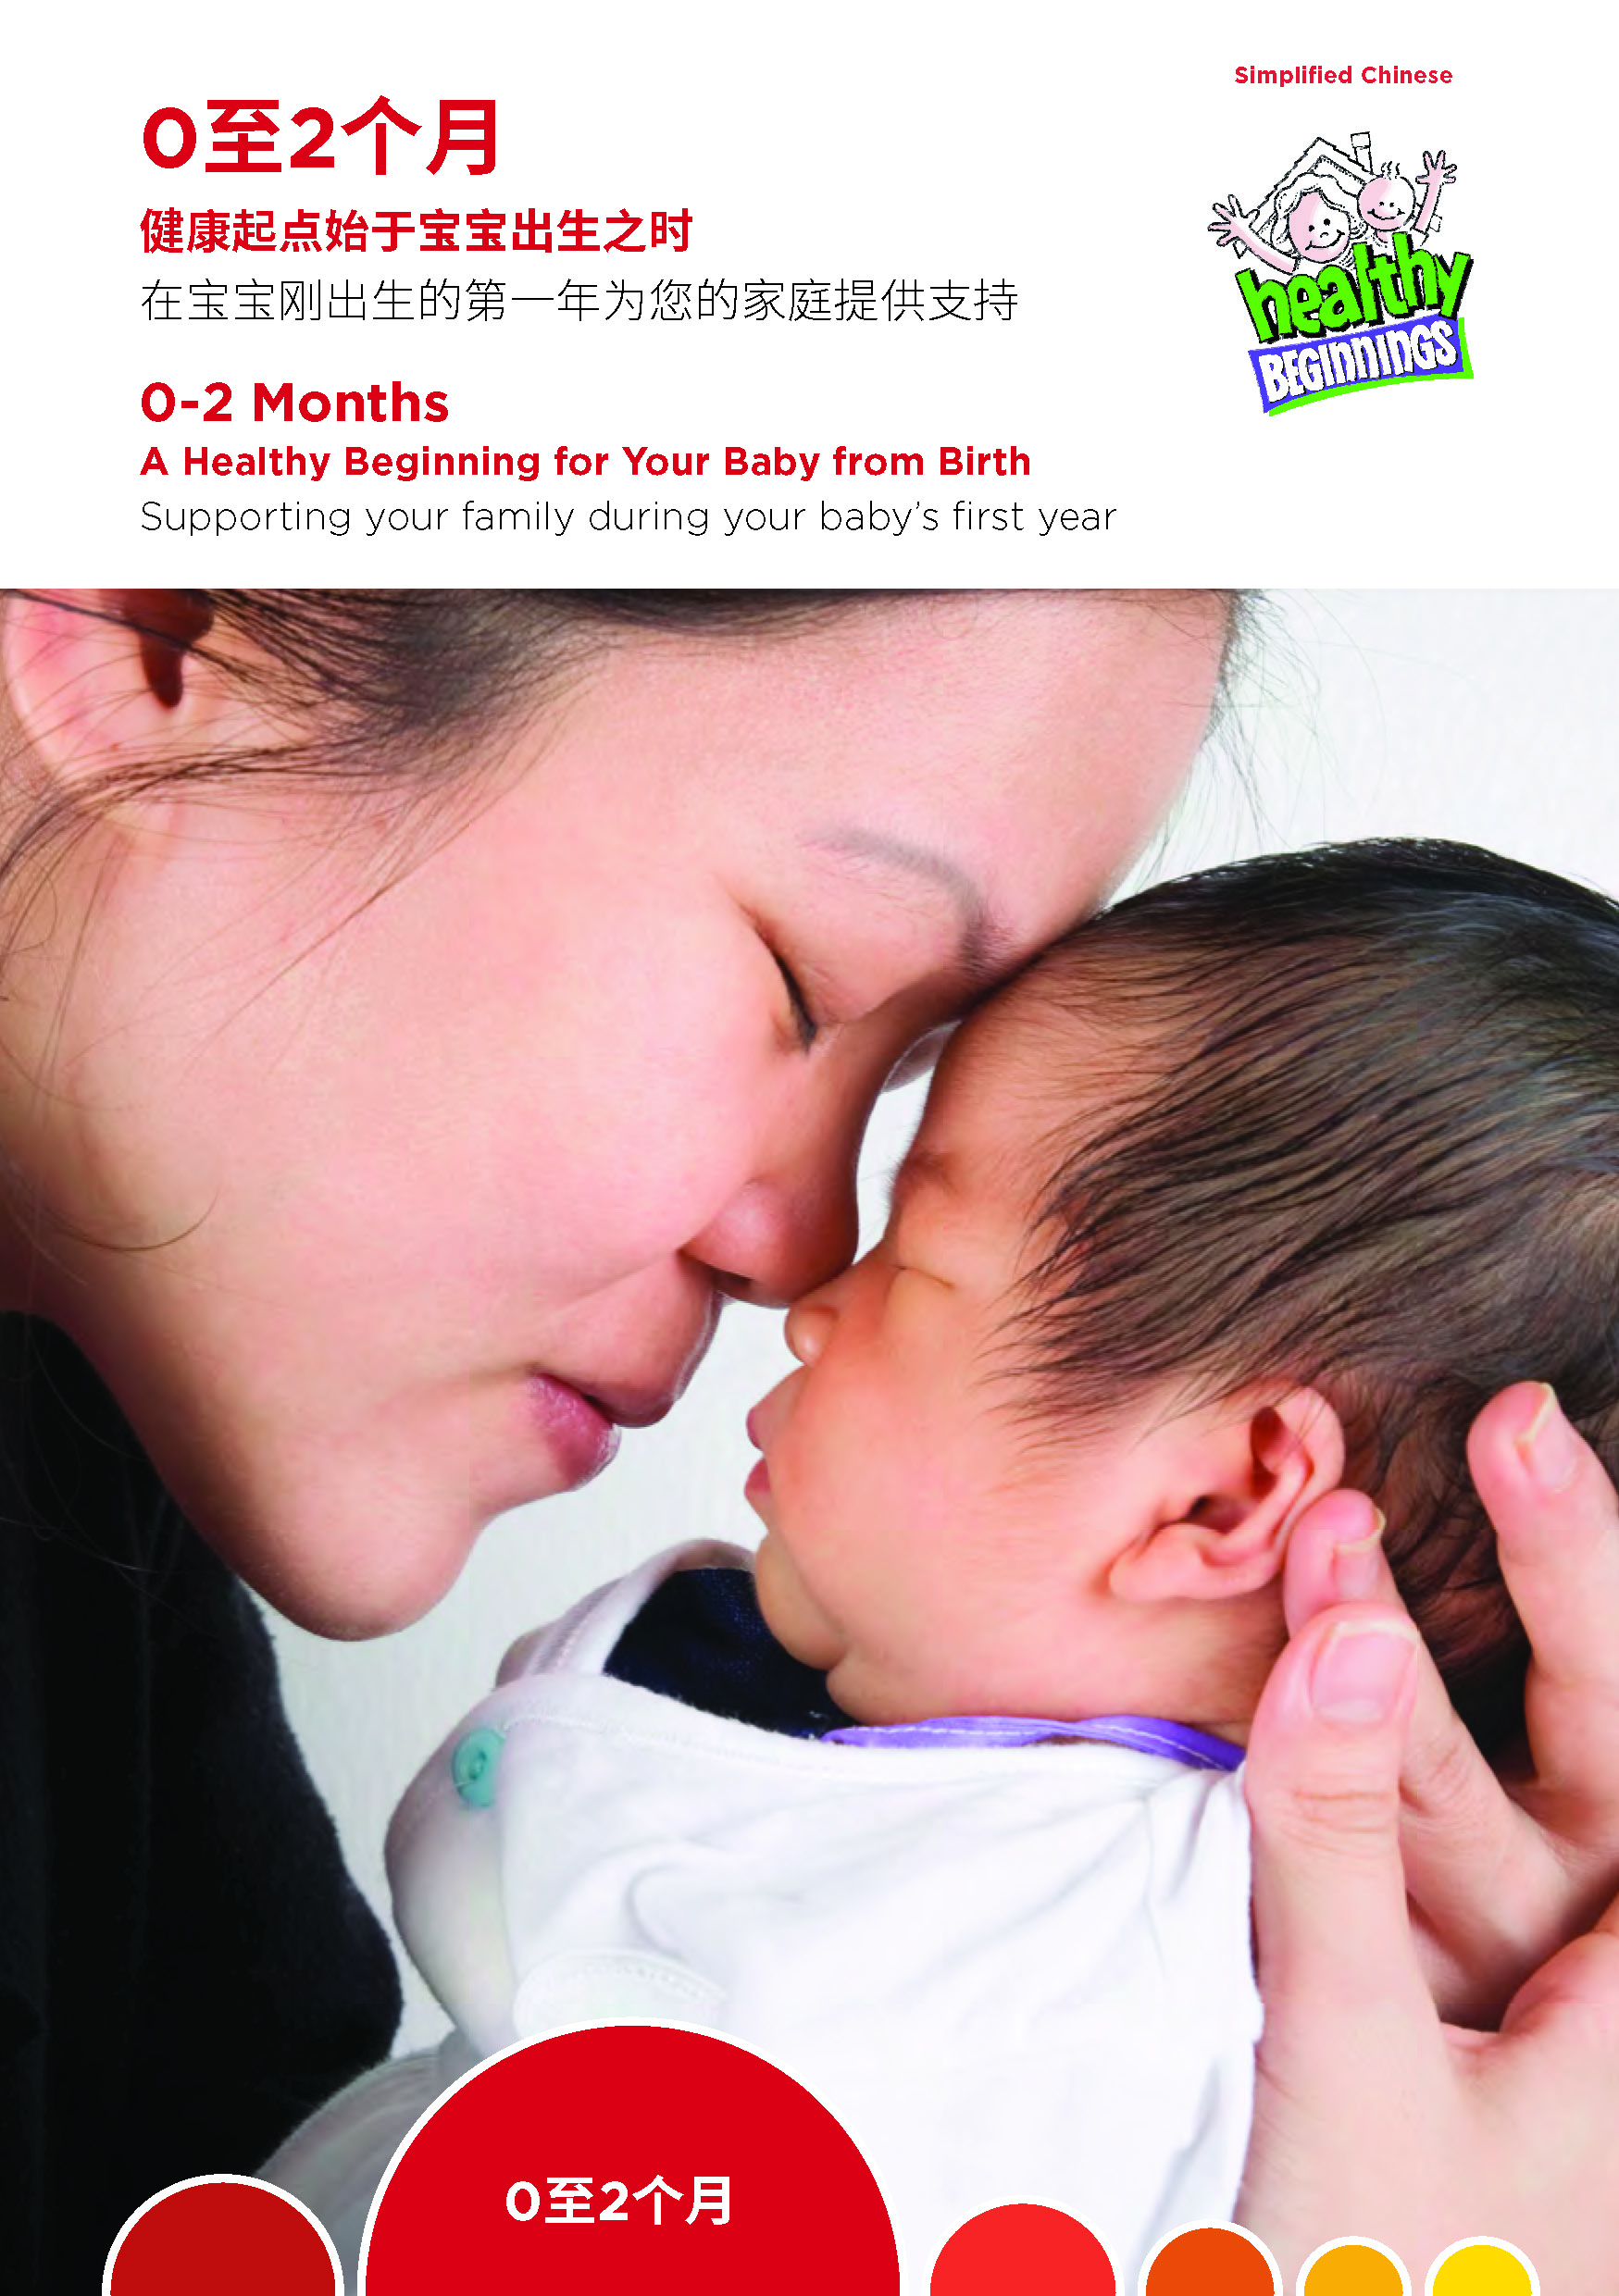 BOOKLET 2 - 0-2 MONTHS_low2CHINESE (1).jpg